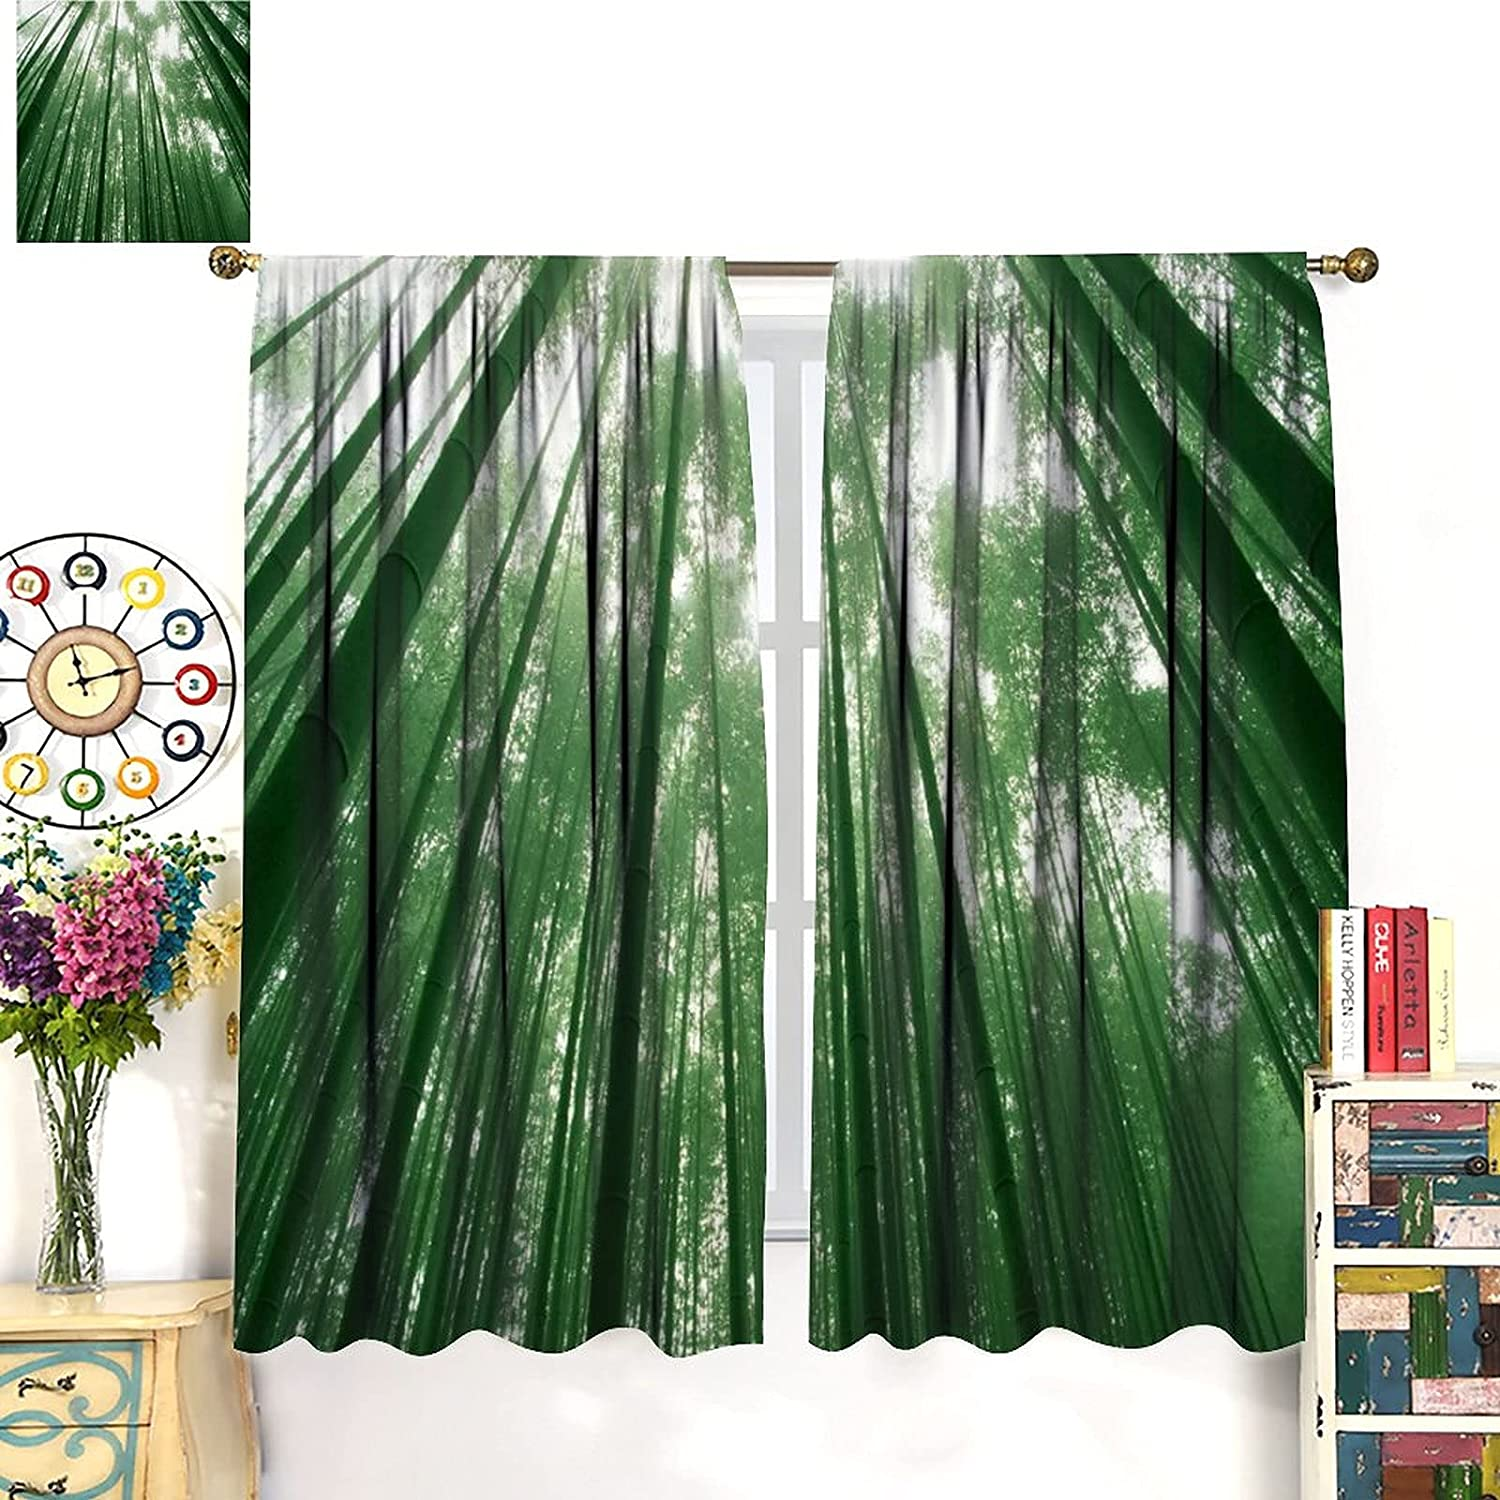 Bamboo Surprise price Curtains,Jungle Green Forest Pattern Scene Print mart